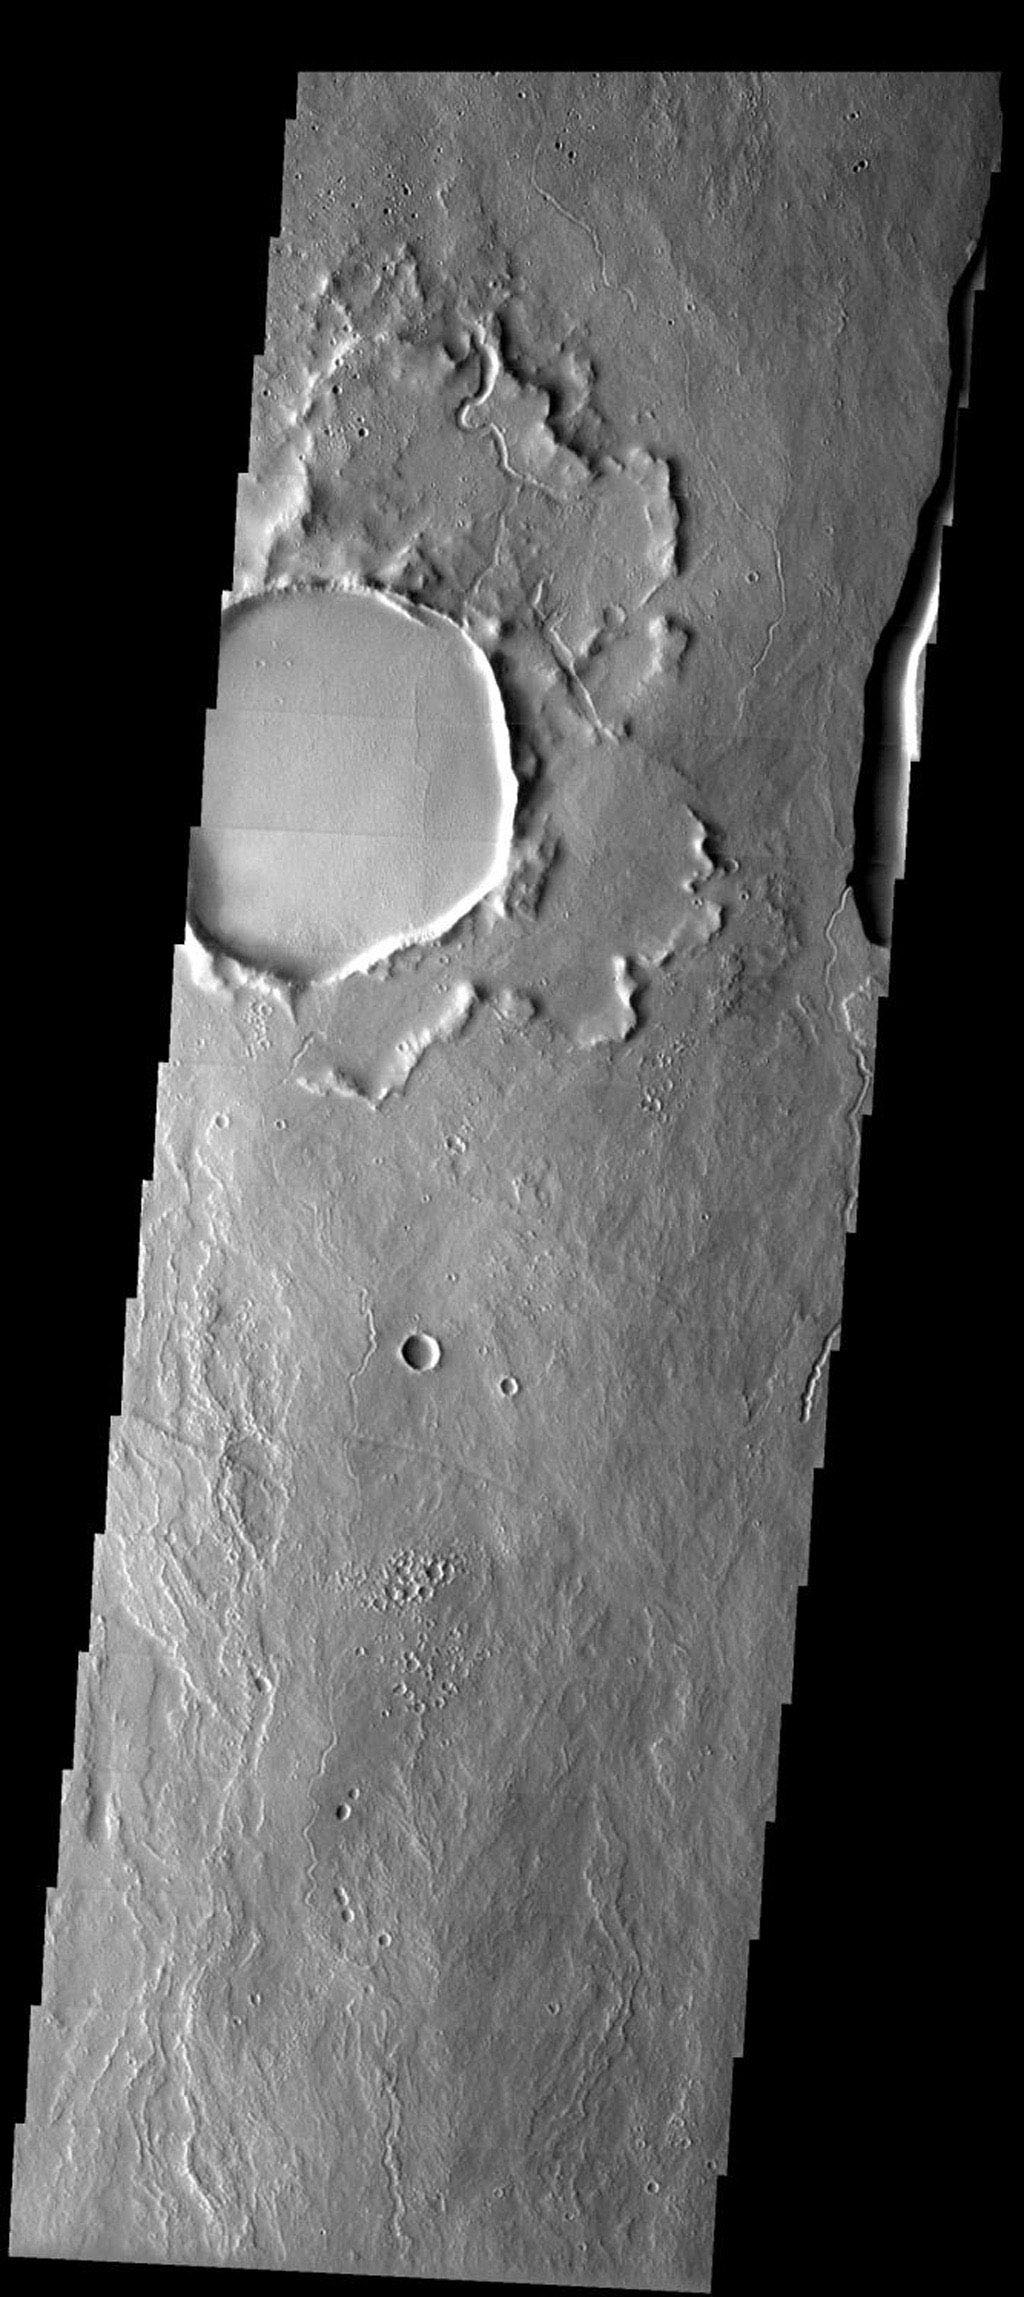 An unusual crater northeast of Ascraeus Mons on Mars displays an ejecta blanket that appears turned up around its edges, as seen in this image from NASA's Mars Odyssey.